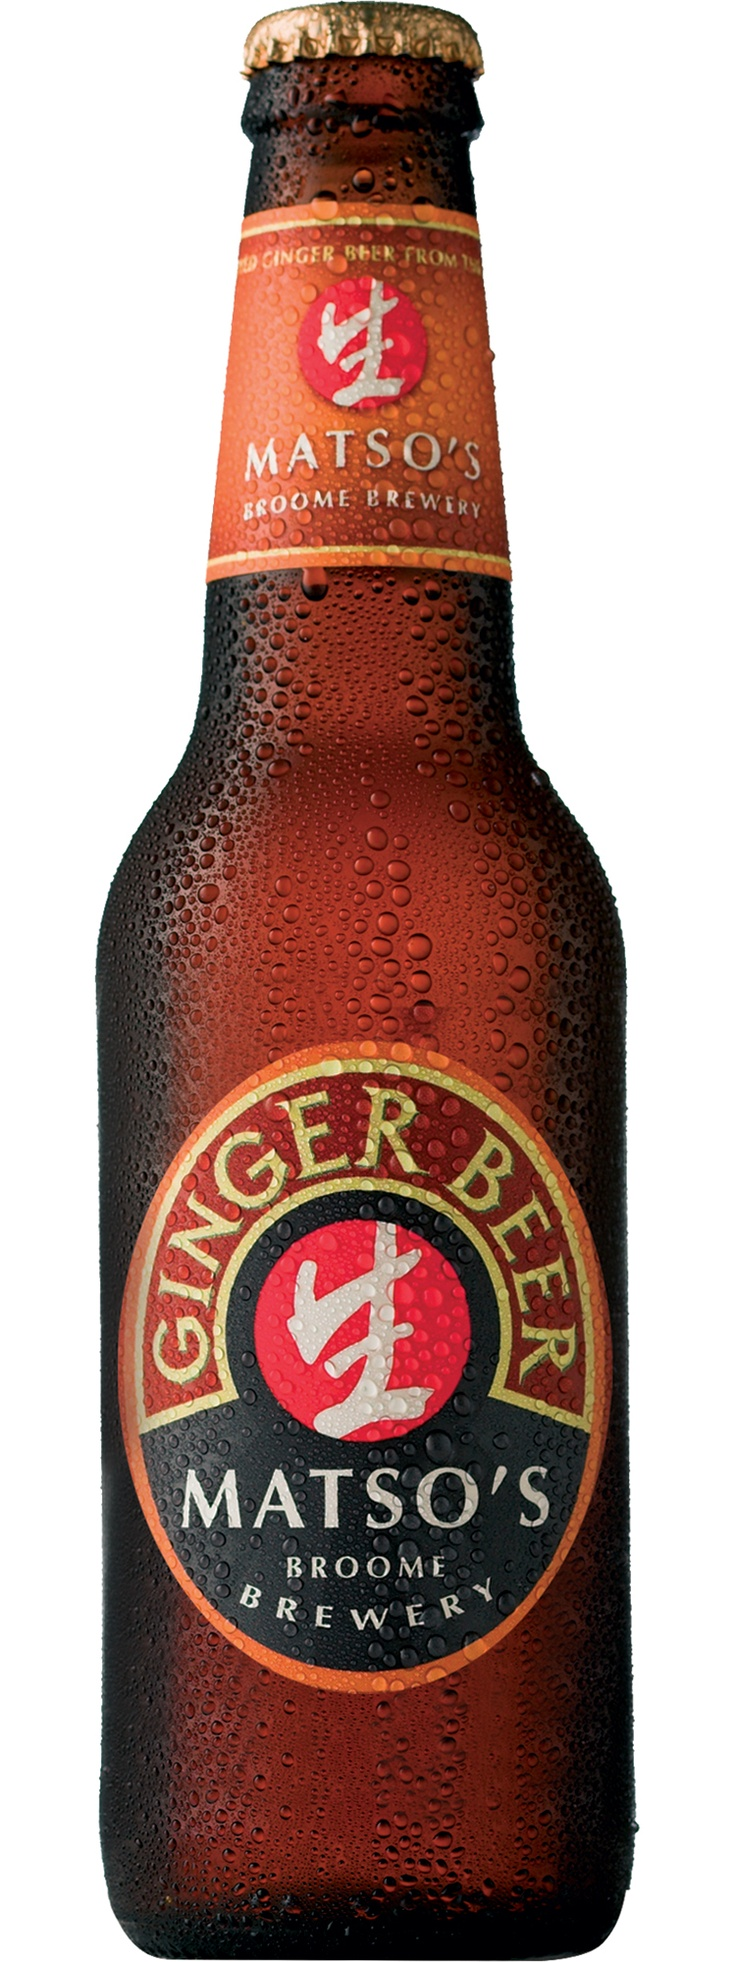 Matso's Ginger Beer.............Many great memories of Broome